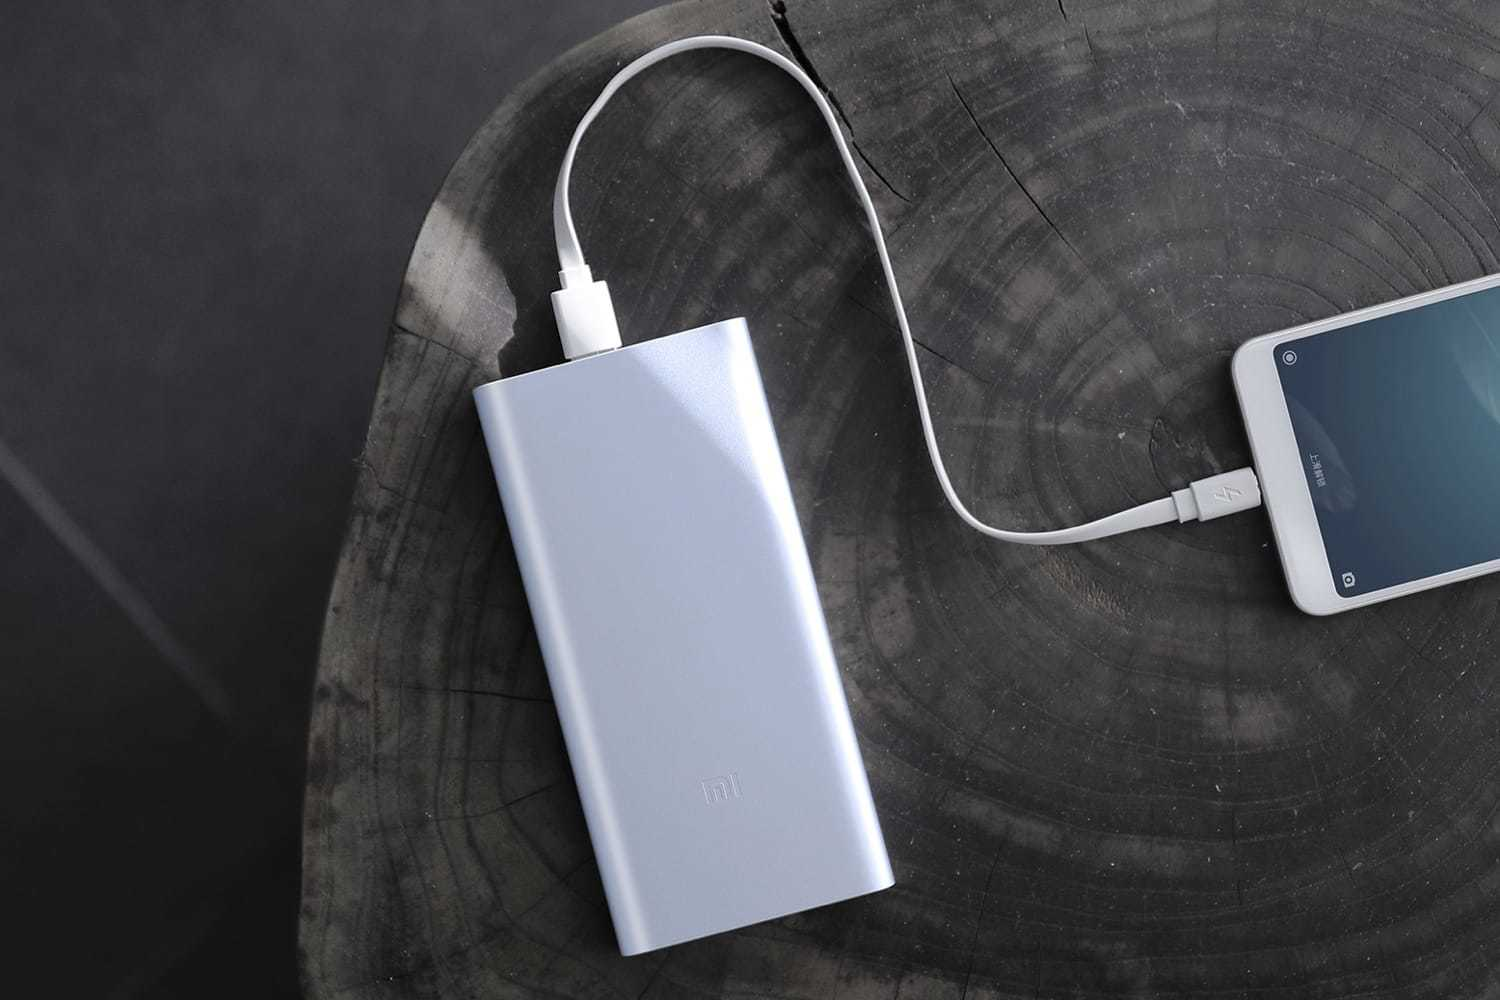 TOP 5 best PowerBank's from Chinese manufacturers